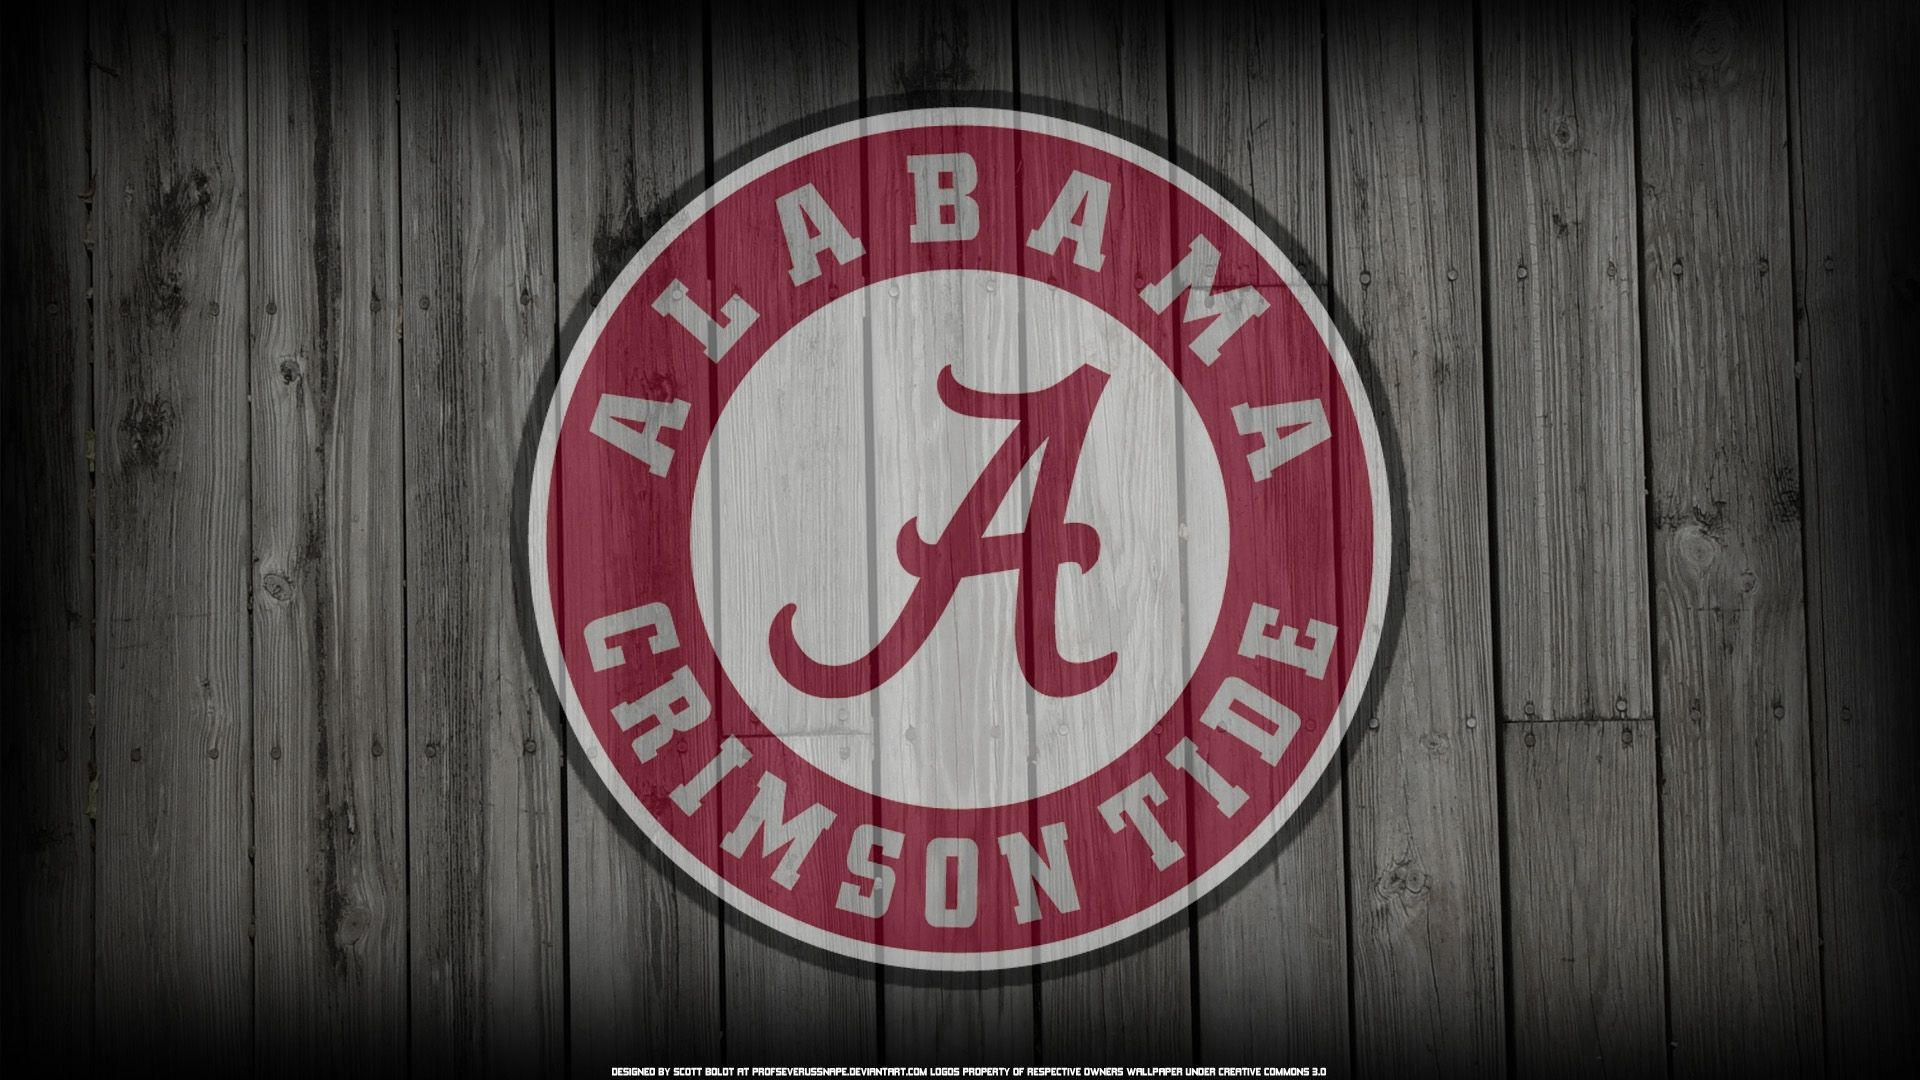 10 Top Alabama Football Screensaver Backgrounds Full Hd 1080p For Pc Desktop In 2020 Alabama Wallpaper Alabama Crimson Tide Crimson Tide